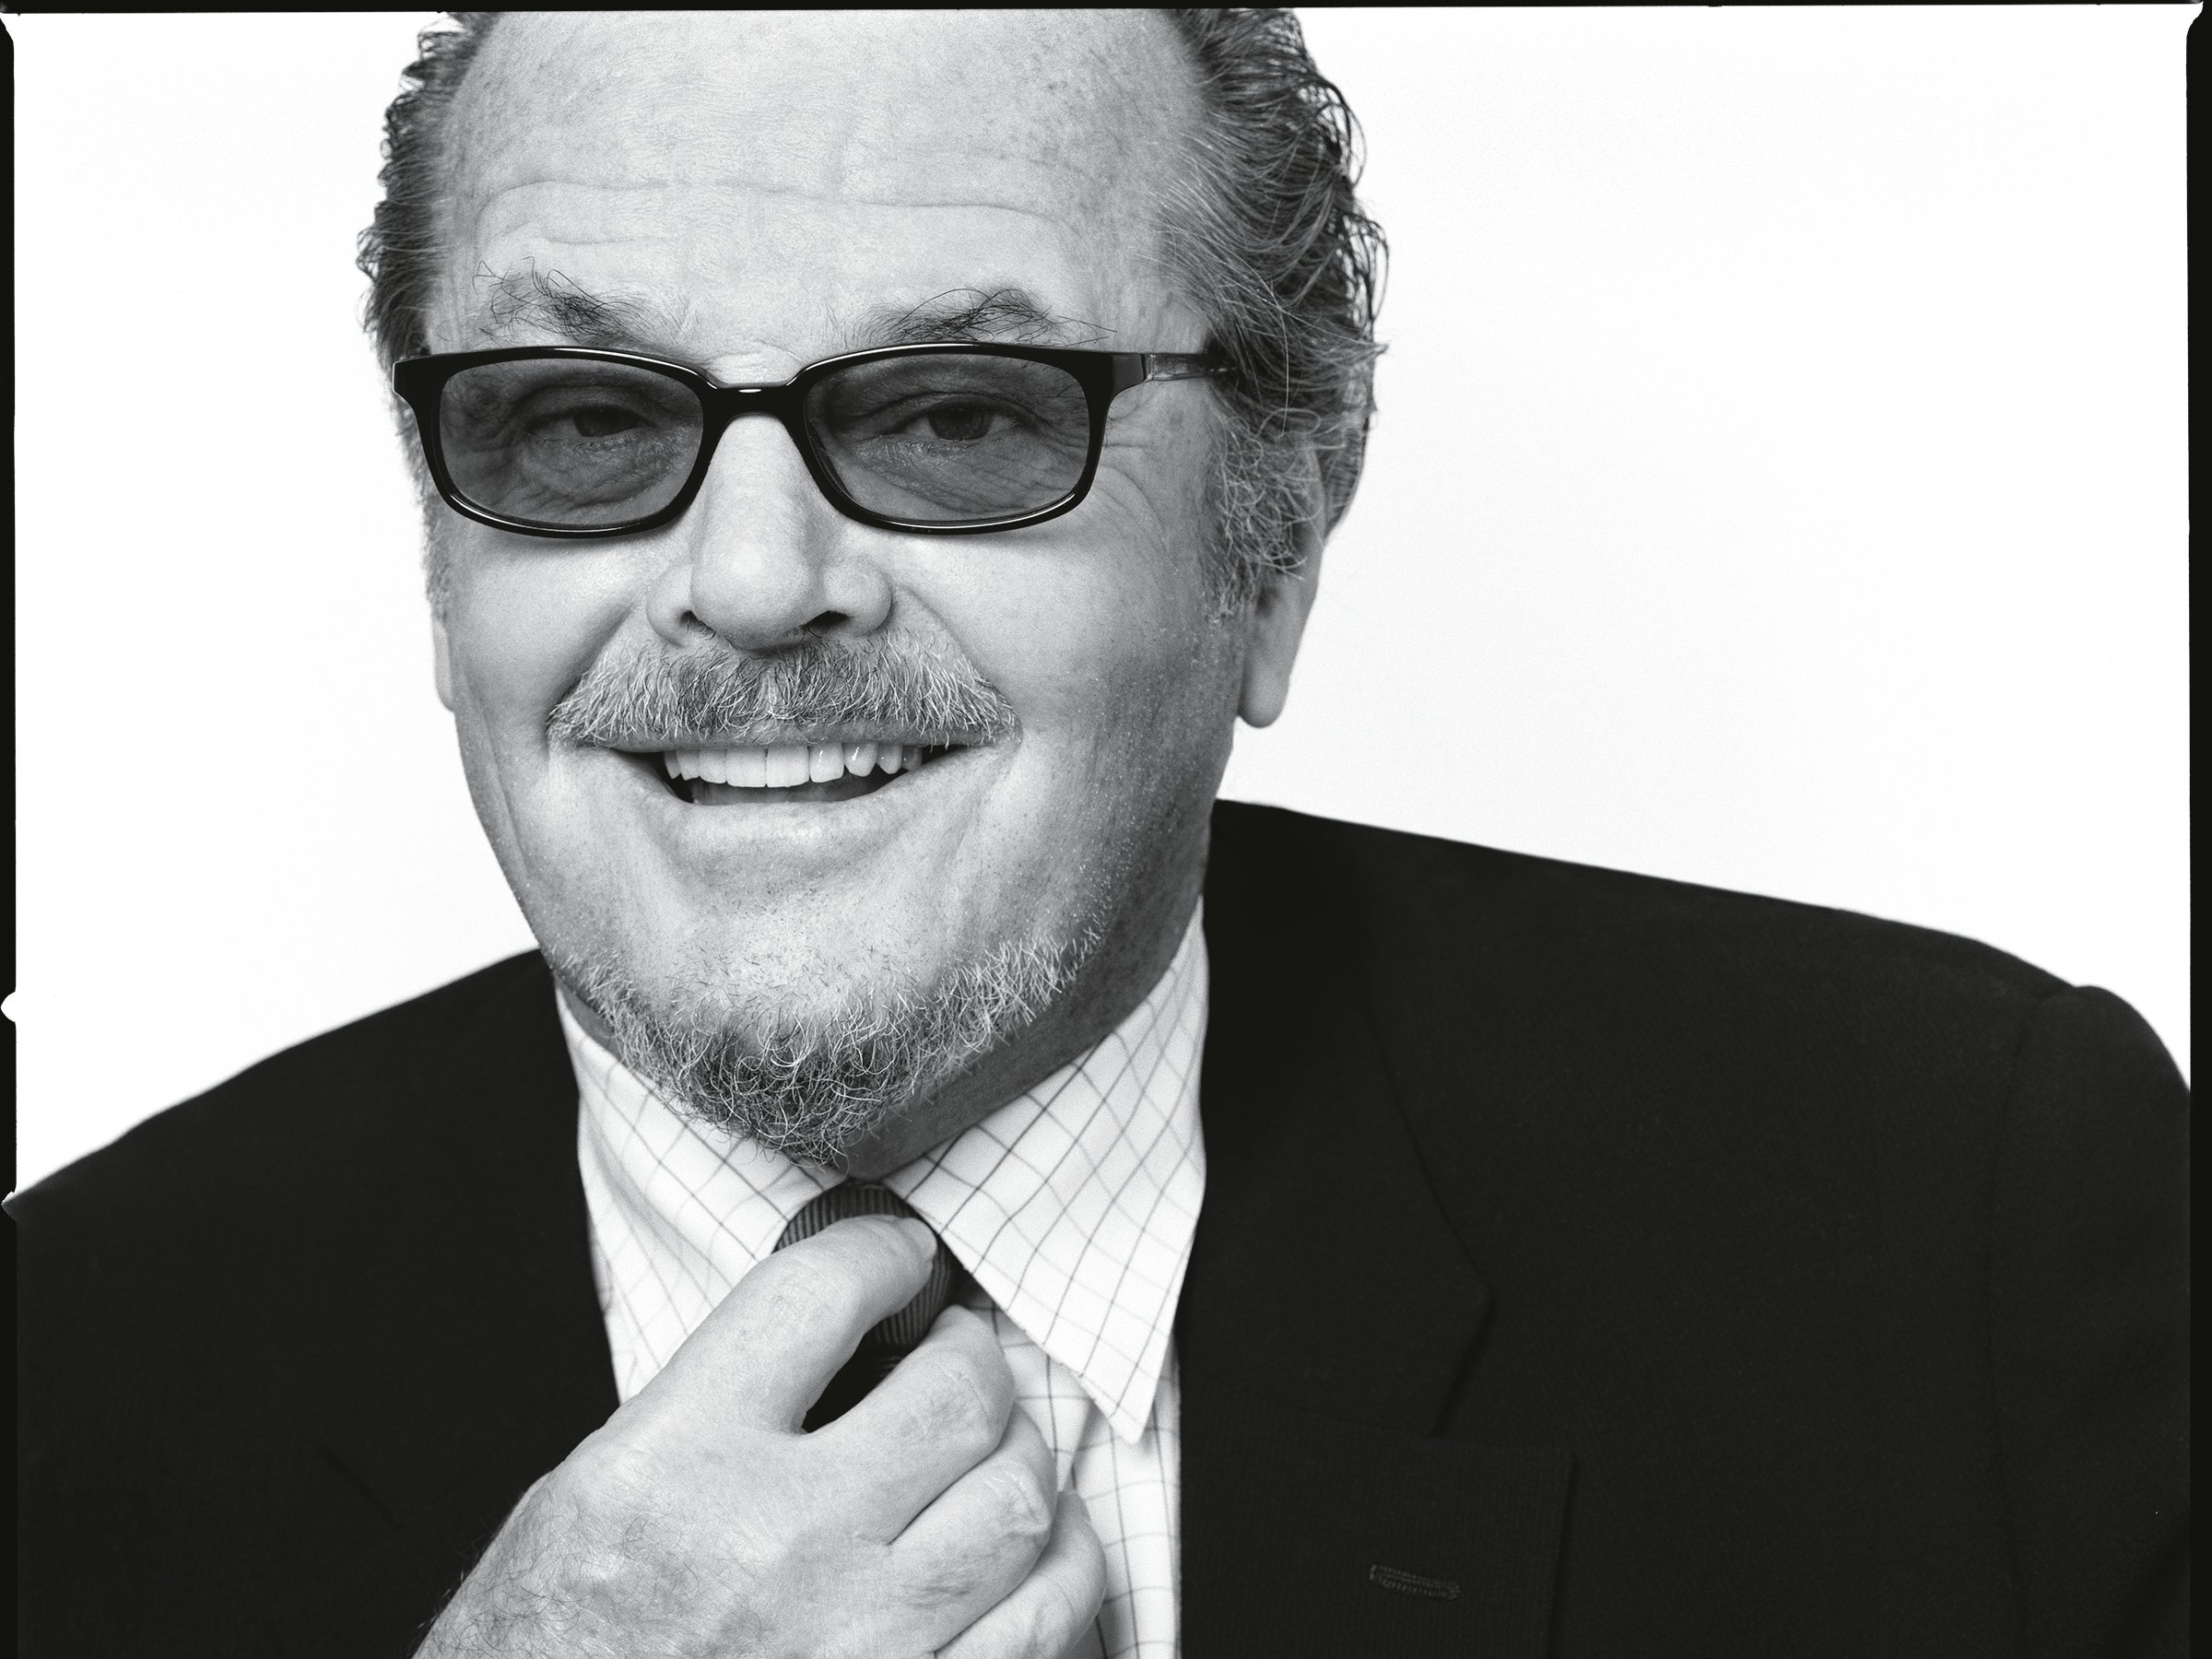 """Raccuglia photographed Jack Nicholson at his home on Mulholland Drive. """"It was around two o'clock in the afternoon when I arrived, and he looked like he just got out of bed,"""" he says. """"He looked at me and said, 'This won't take long, will it?' He was just really cool."""""""